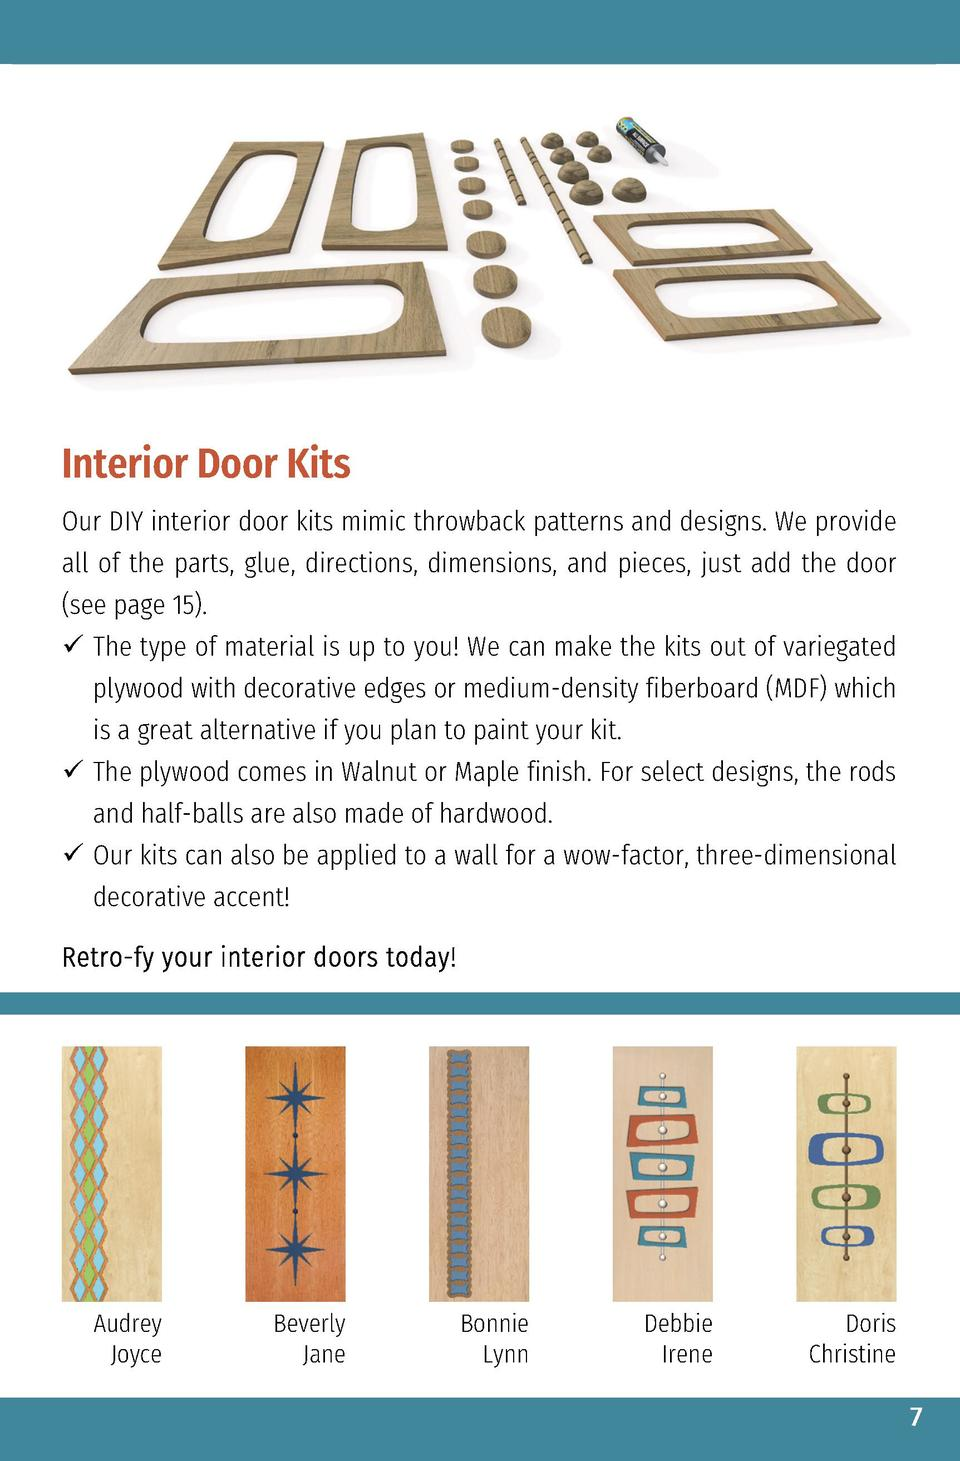 Interior Door Kits Our DIY interior door kits mimic throwback patterns and designs. We provide all of the parts, glue, dir...